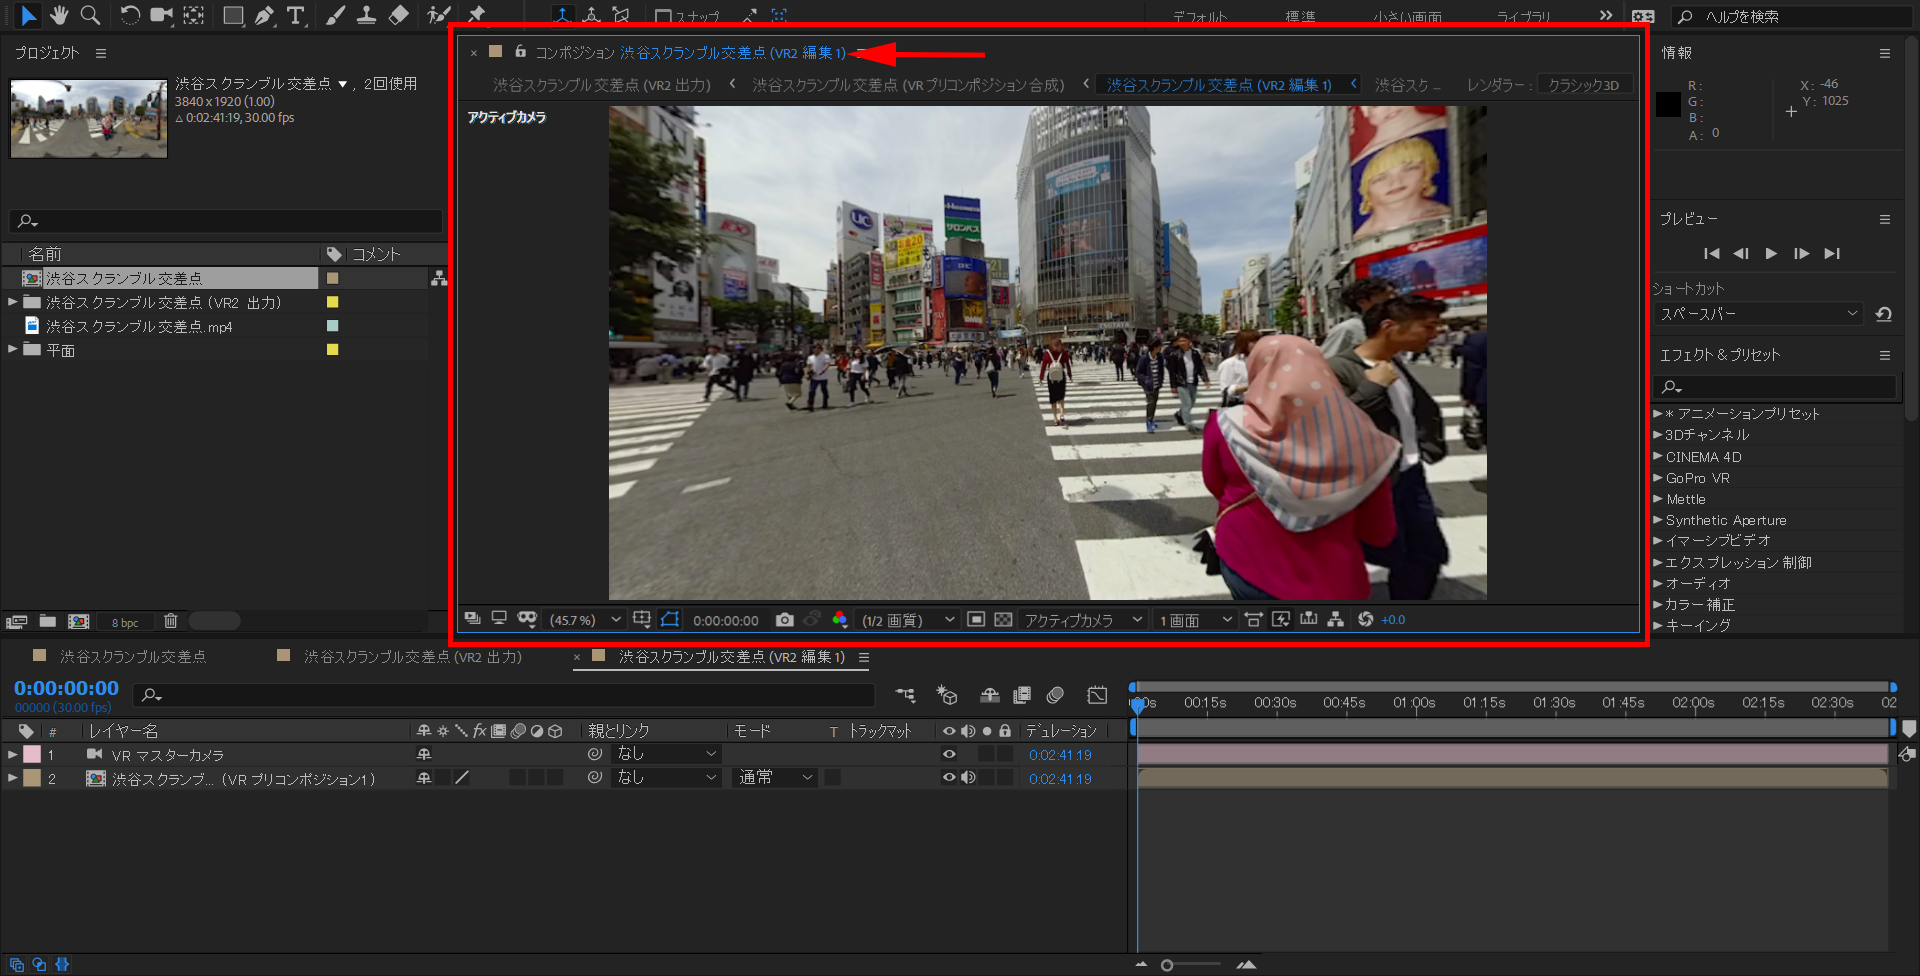 Adobe After Effects _VR2編集